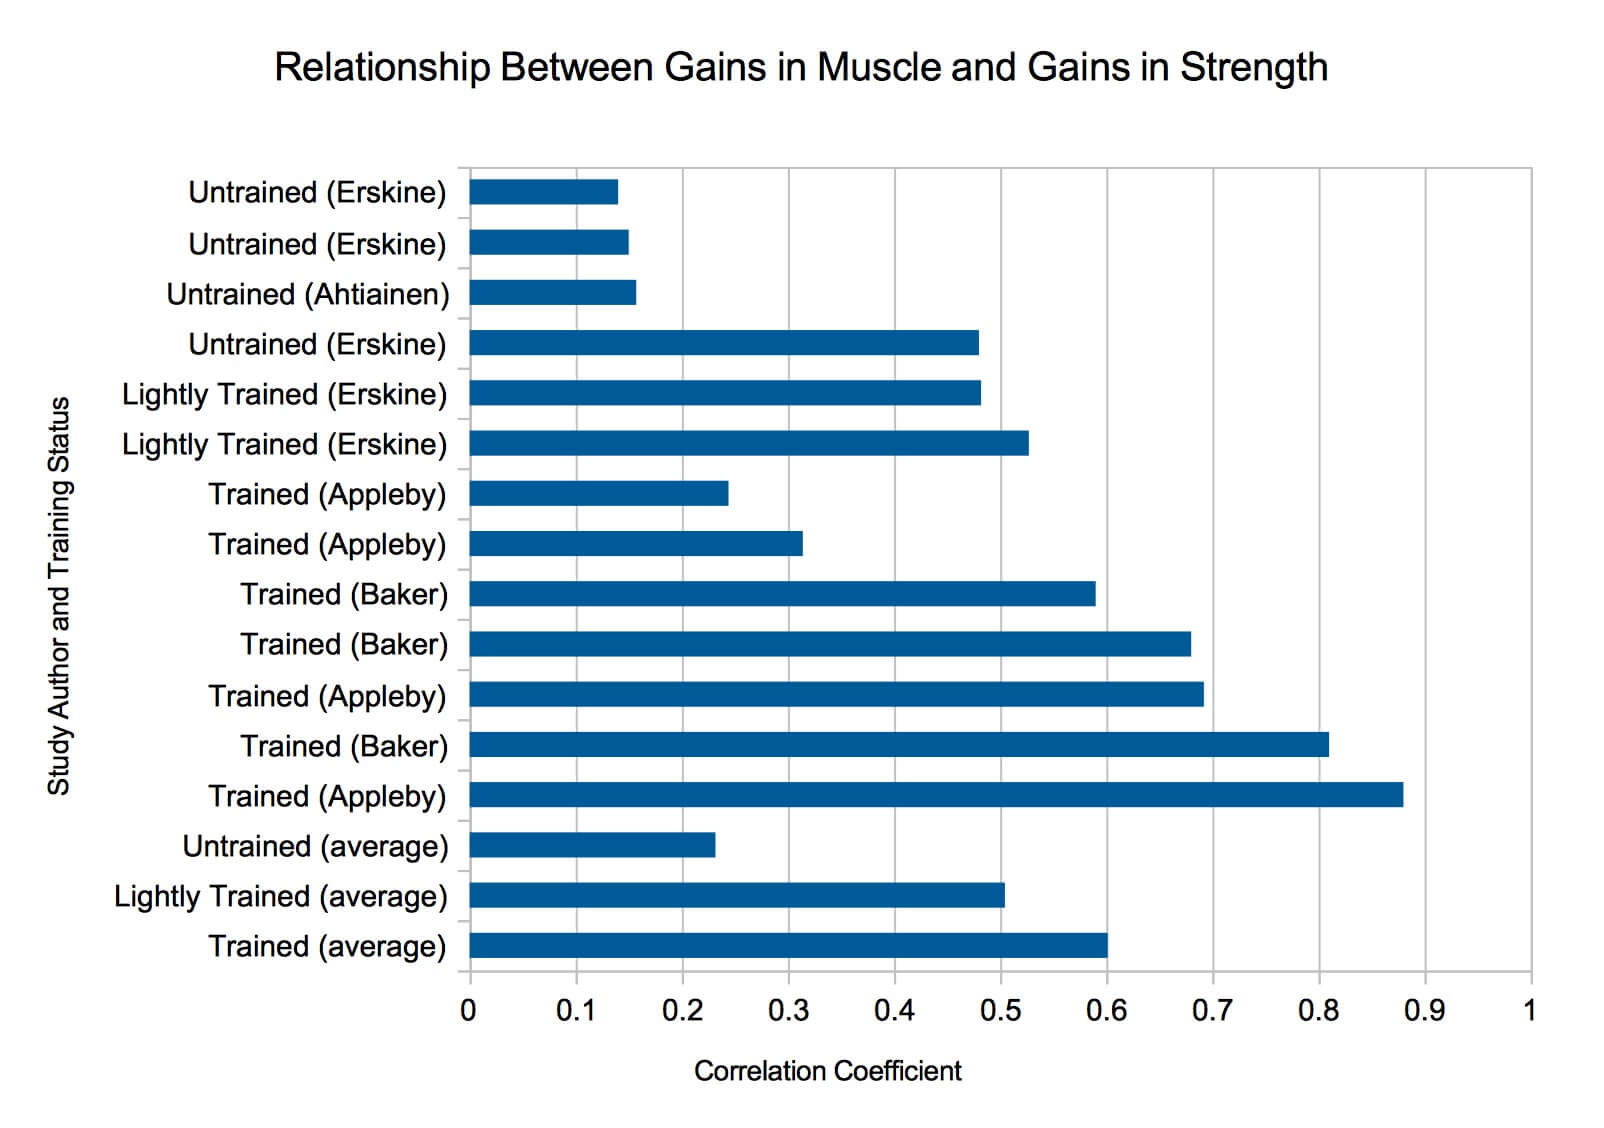 As you can see, in studies with more experienced participants, the relationship between muscle gains and strength gains tends to be stronger.